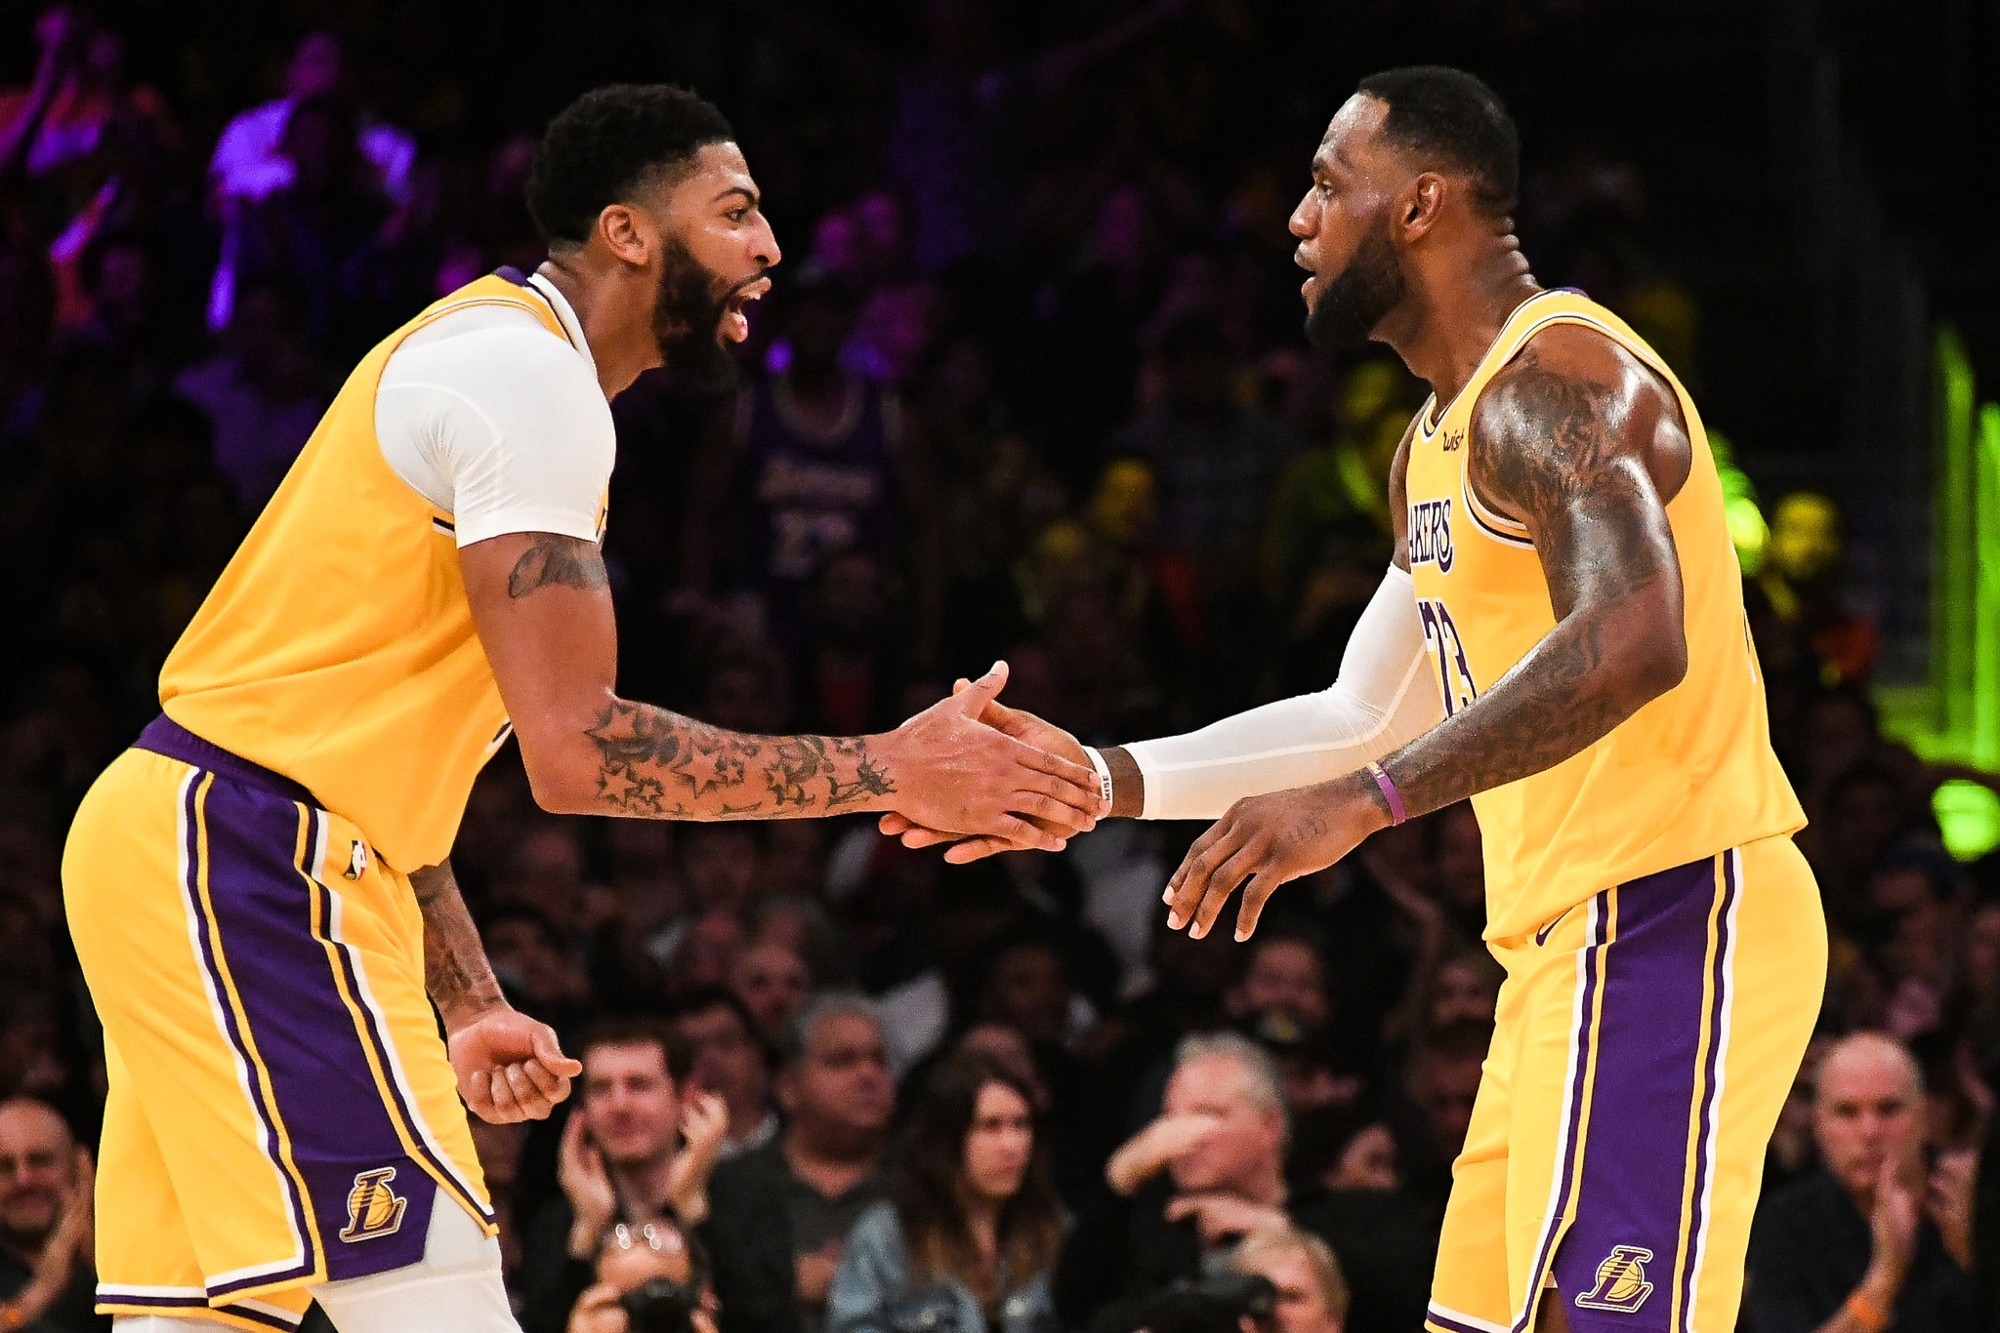 Anthony Davis and LeBron James carried the Los Angeles Lakers all the way. Which one of them was the NBA Playoff MVP?